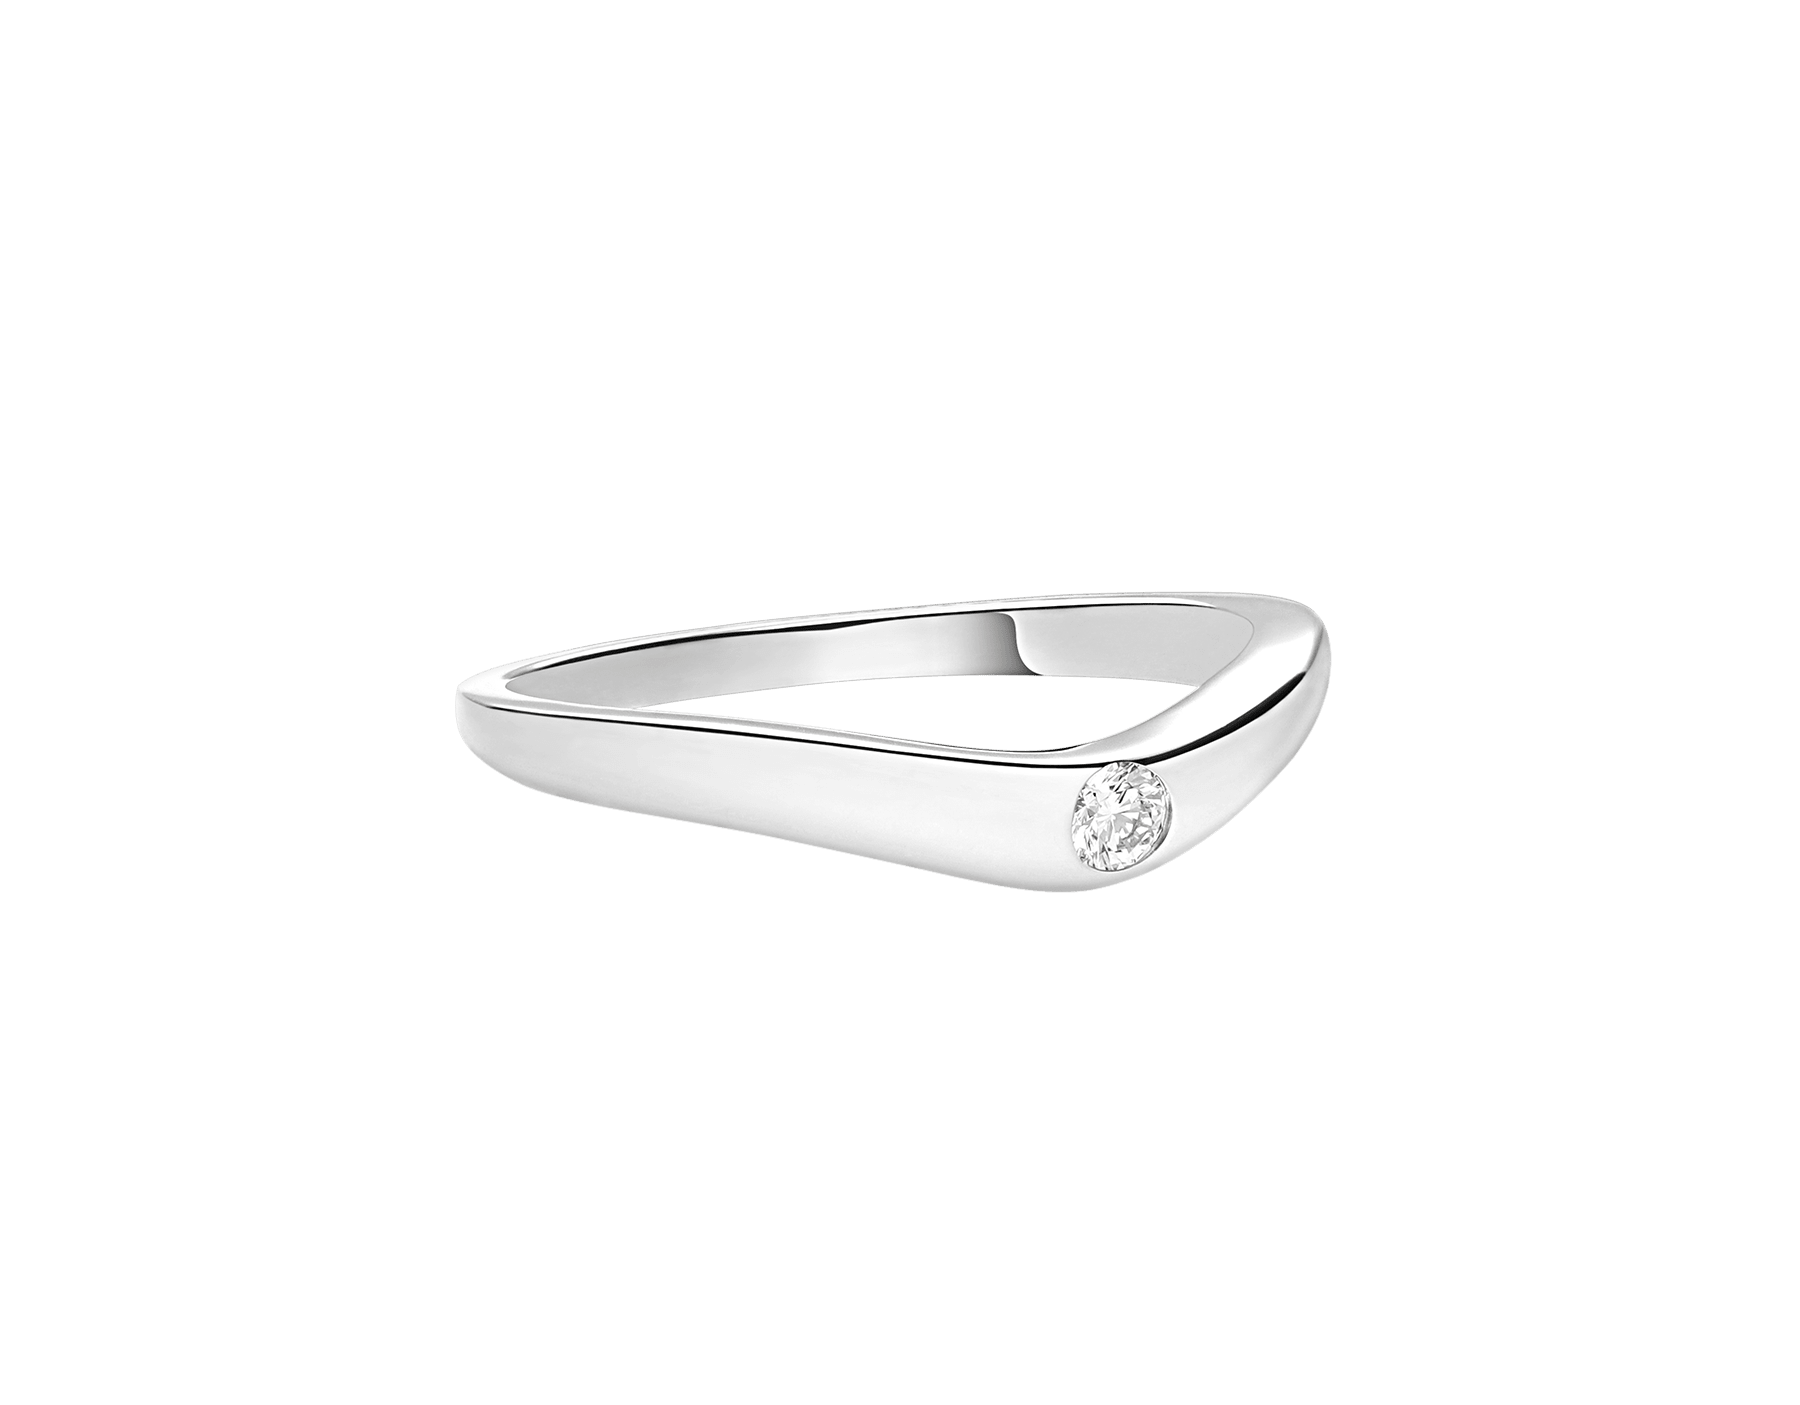 Fedi platinum Wedding Band, set with a diamond. AN856296 image 2